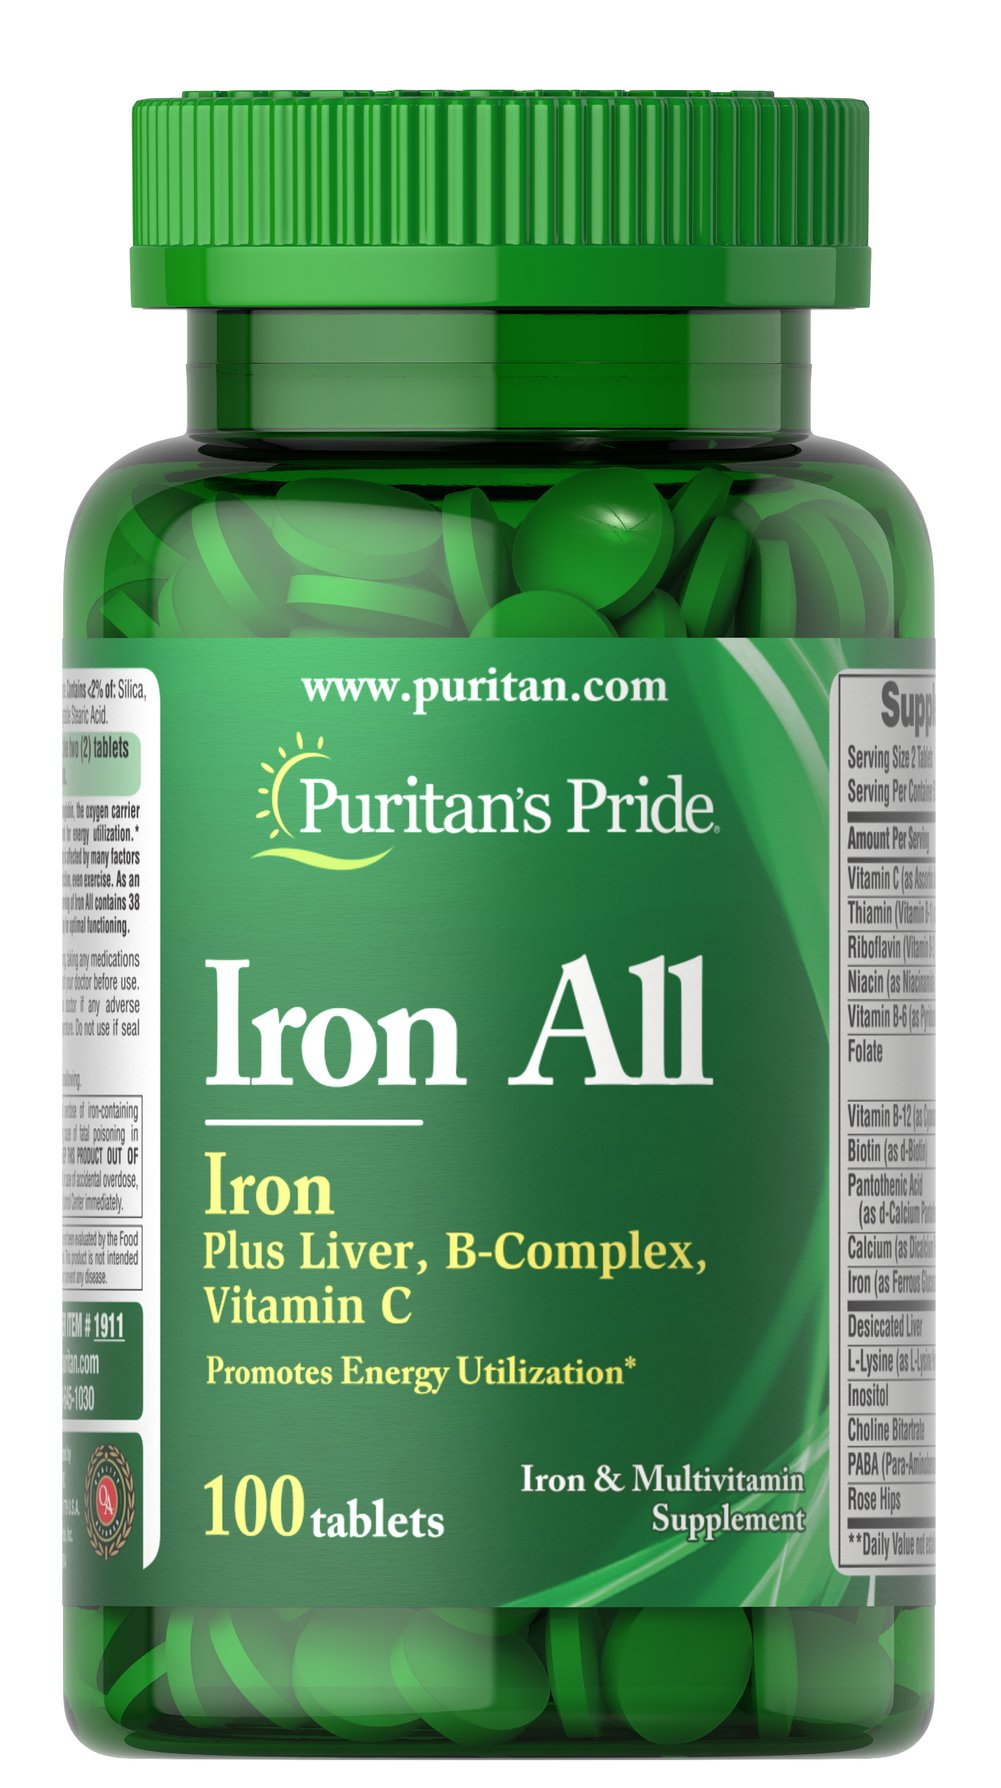 Iron All Iron <p>A Synergistic Iron Multi-Formula for Maximum Assimilation!</p><p>Contains 19 mg Iron with added B Vitamins, Vitamin C, Vitamin B-12</p> 100 Tablets  $9.29